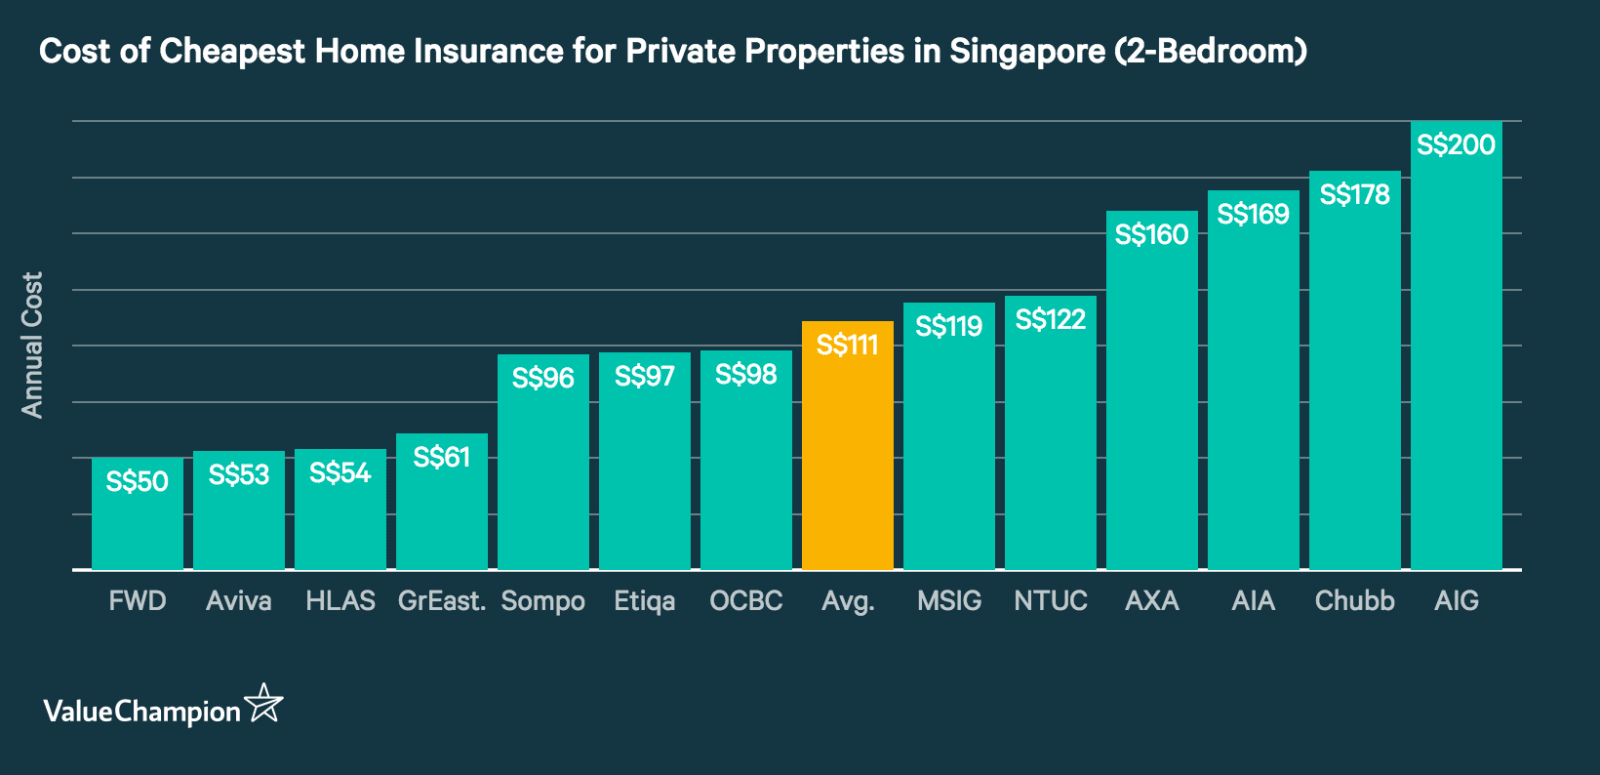 This graph compares the costs of home insurance in Singapore for a 2-bedroom condo